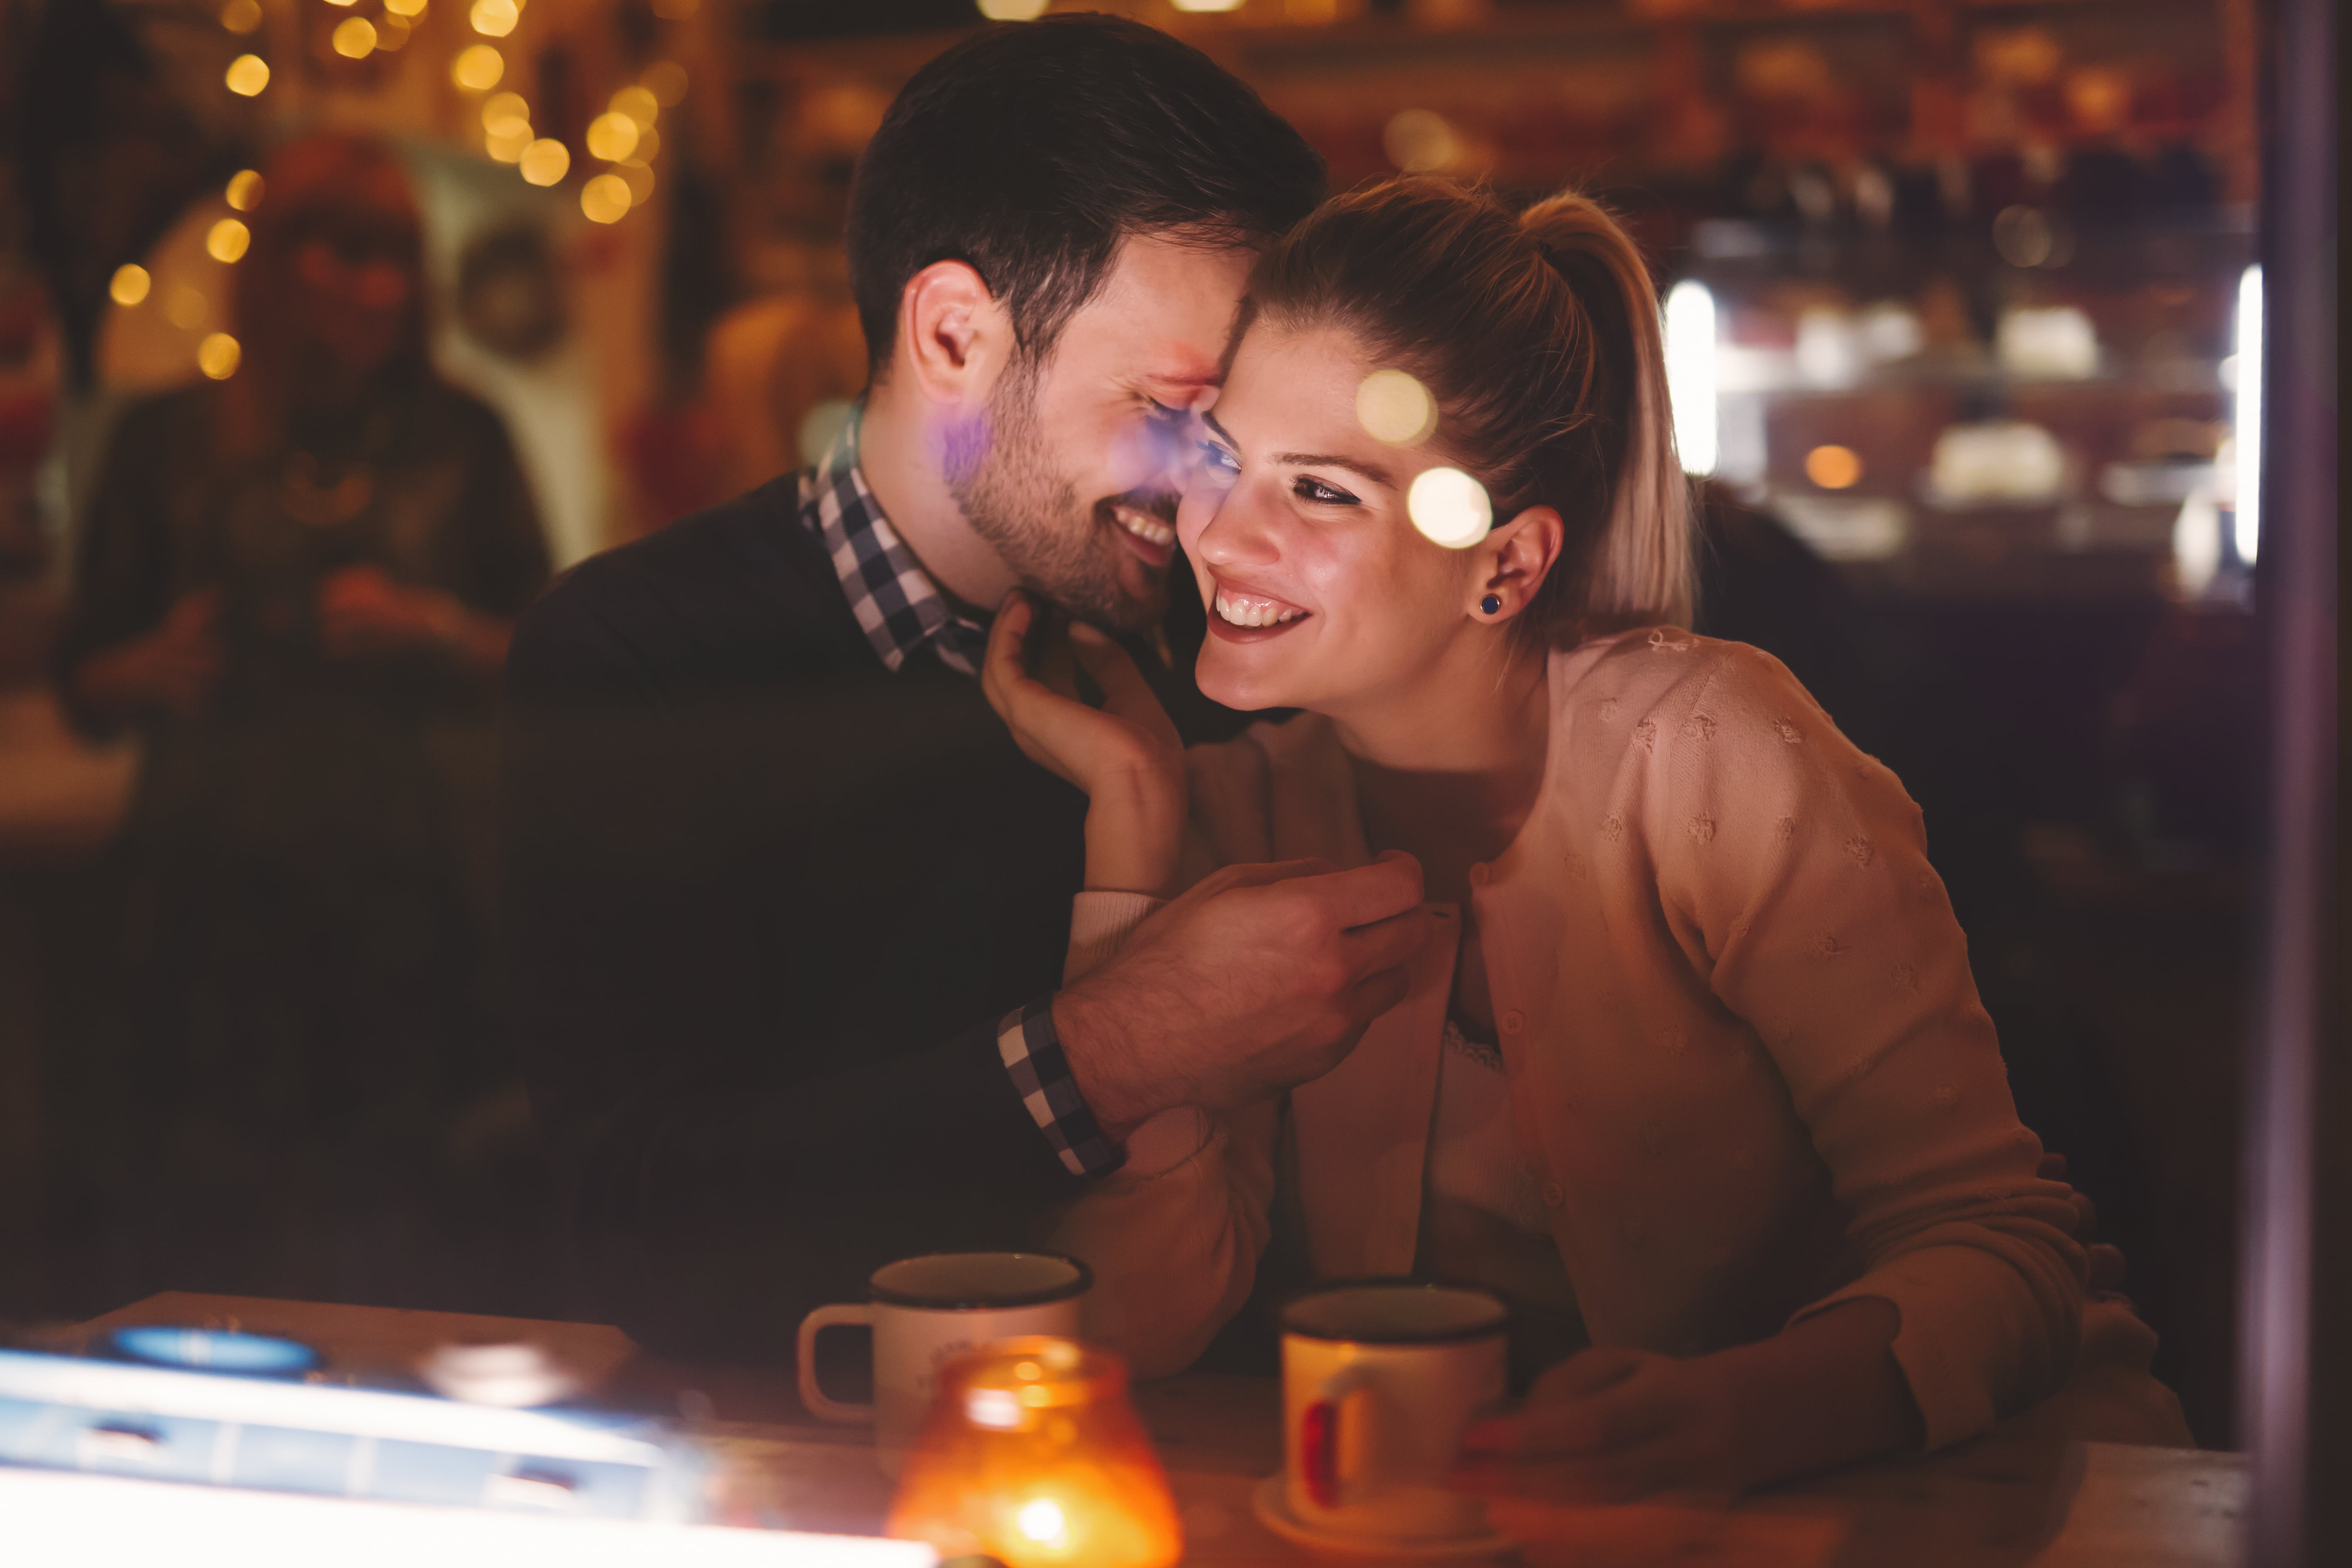 7 Great Date Night Ideas for Exhausted Parents